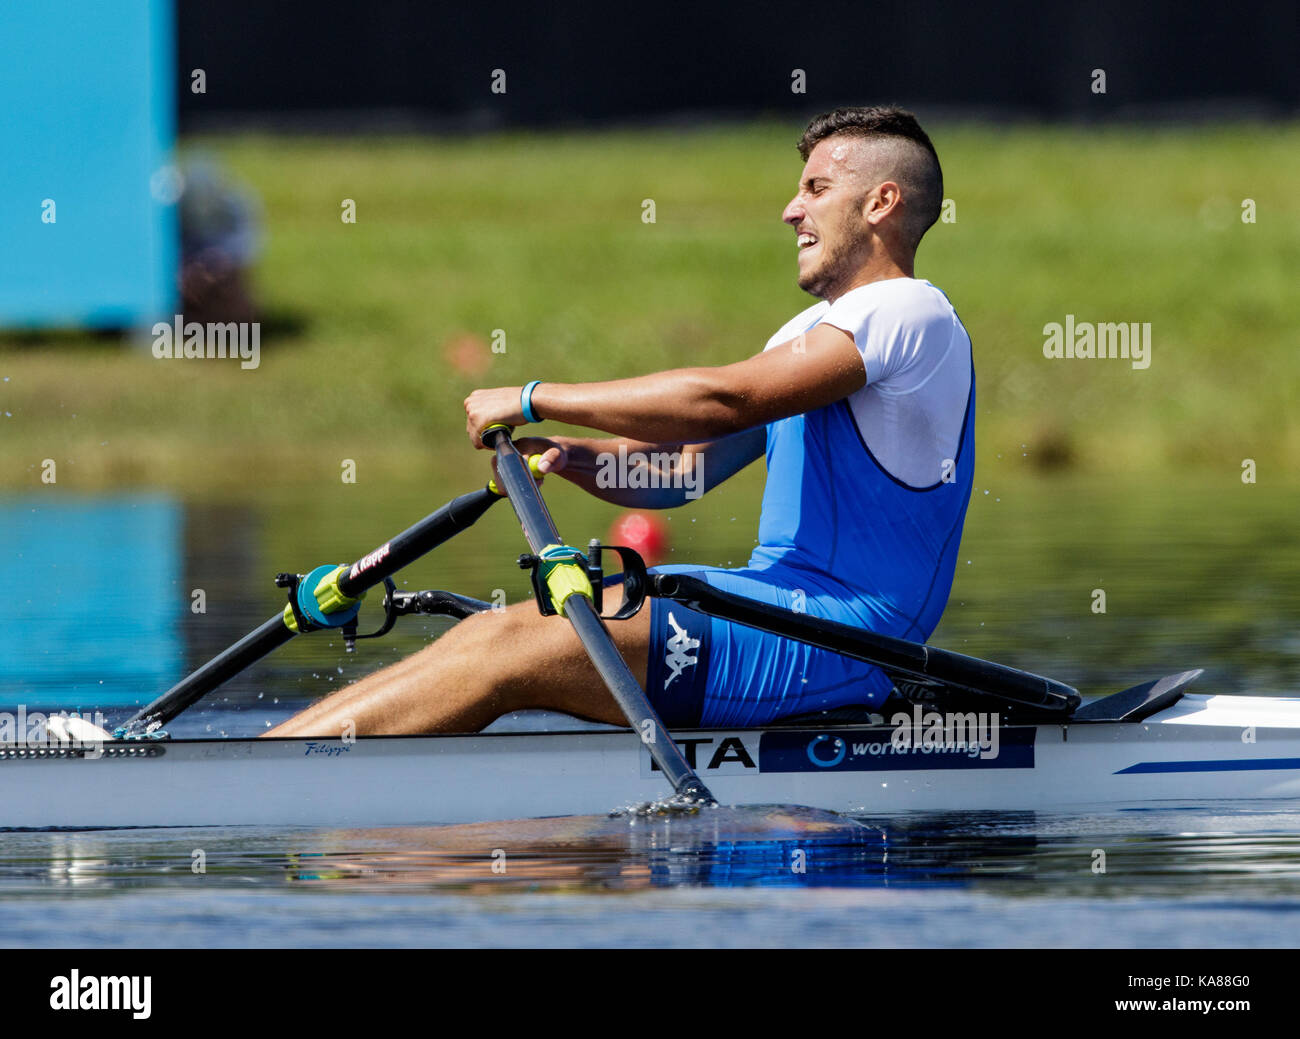 Sarasota-Bradenton, Florida, USA. 25th Sep, 2017. Salvatore Monfrecola of team Italy during (M1x) Men's Single Sculls - Repechage in the World Rowing Championships being held at Nathan Benderson Park in Sarasota-Bradenton, Florida. Del Mecum/CSM/Alamy Live News Stock Photo